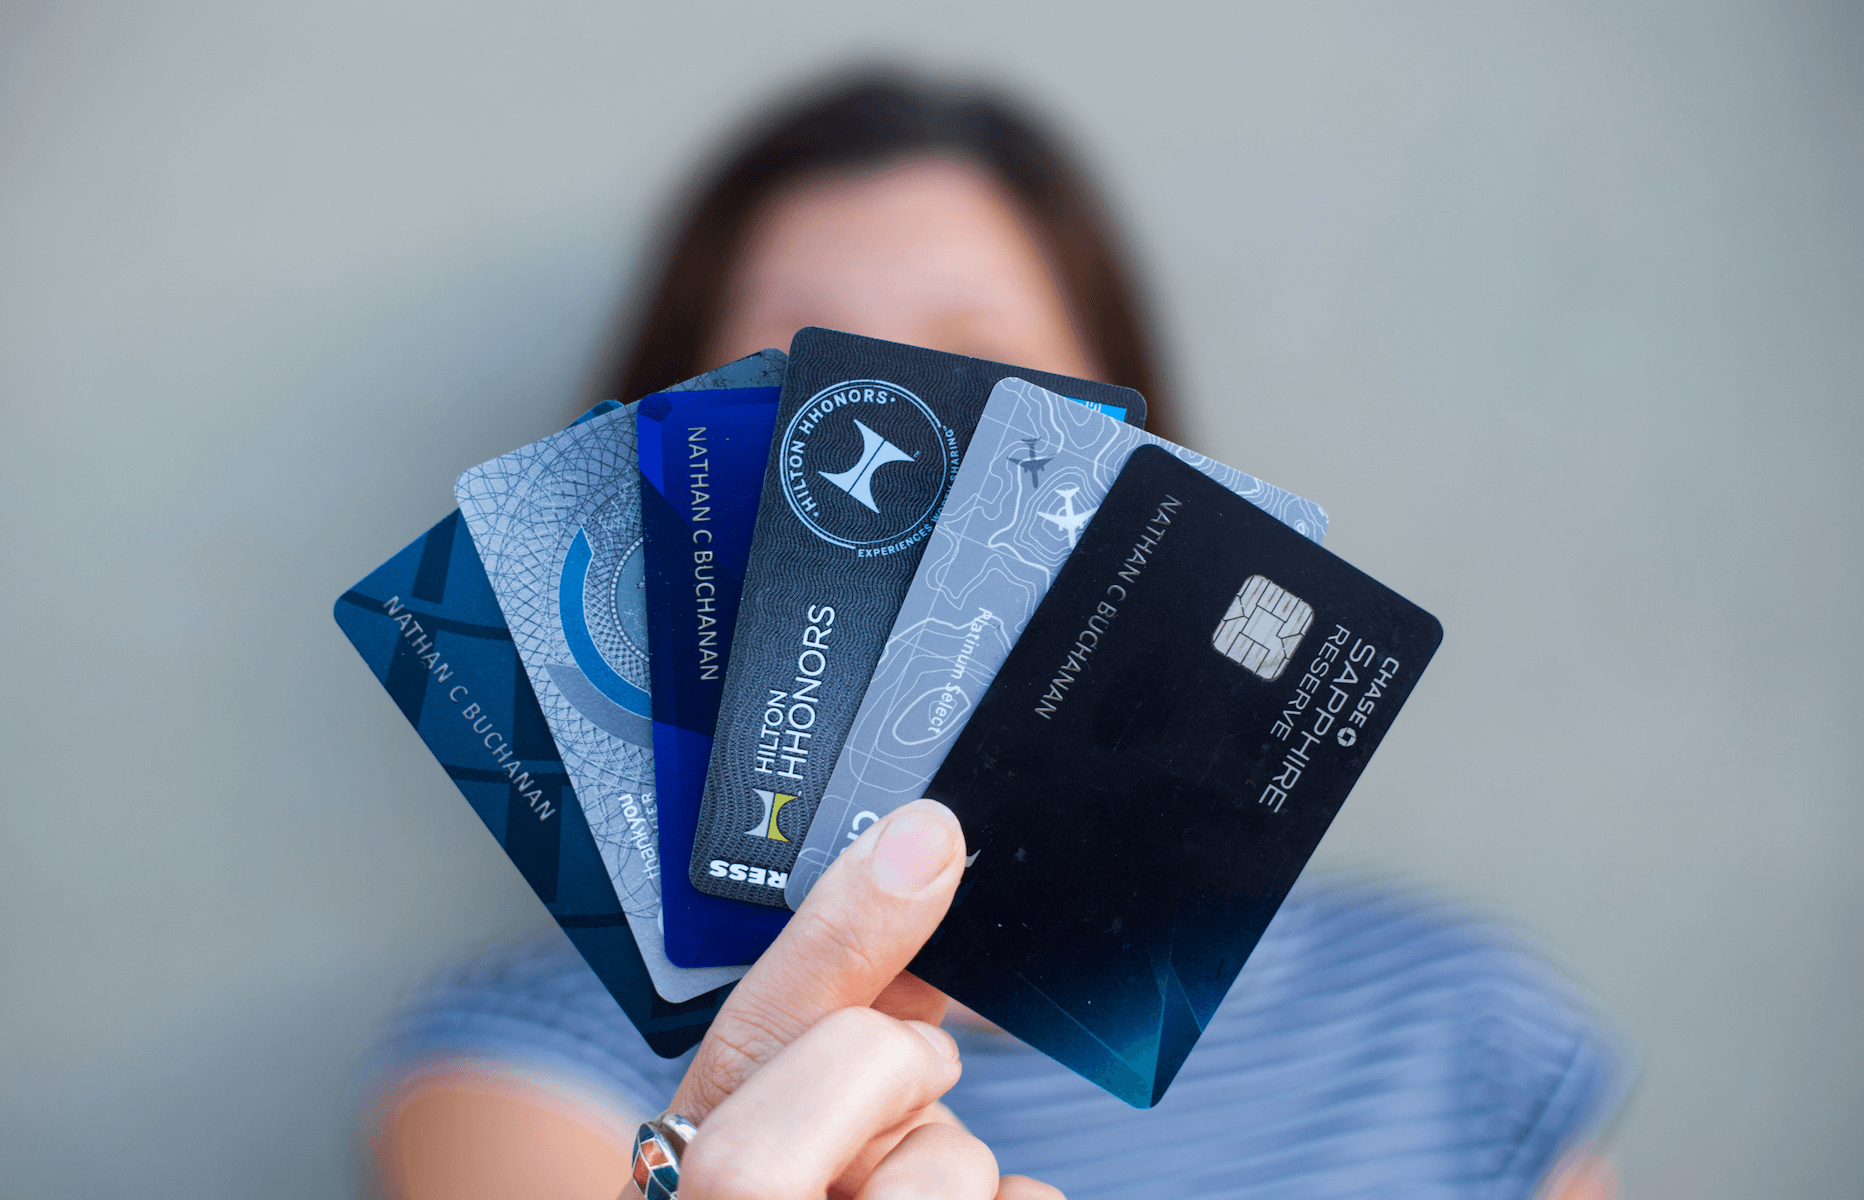 The Top 10 Personal Travel Rewards Credit Card Offers for June 2018